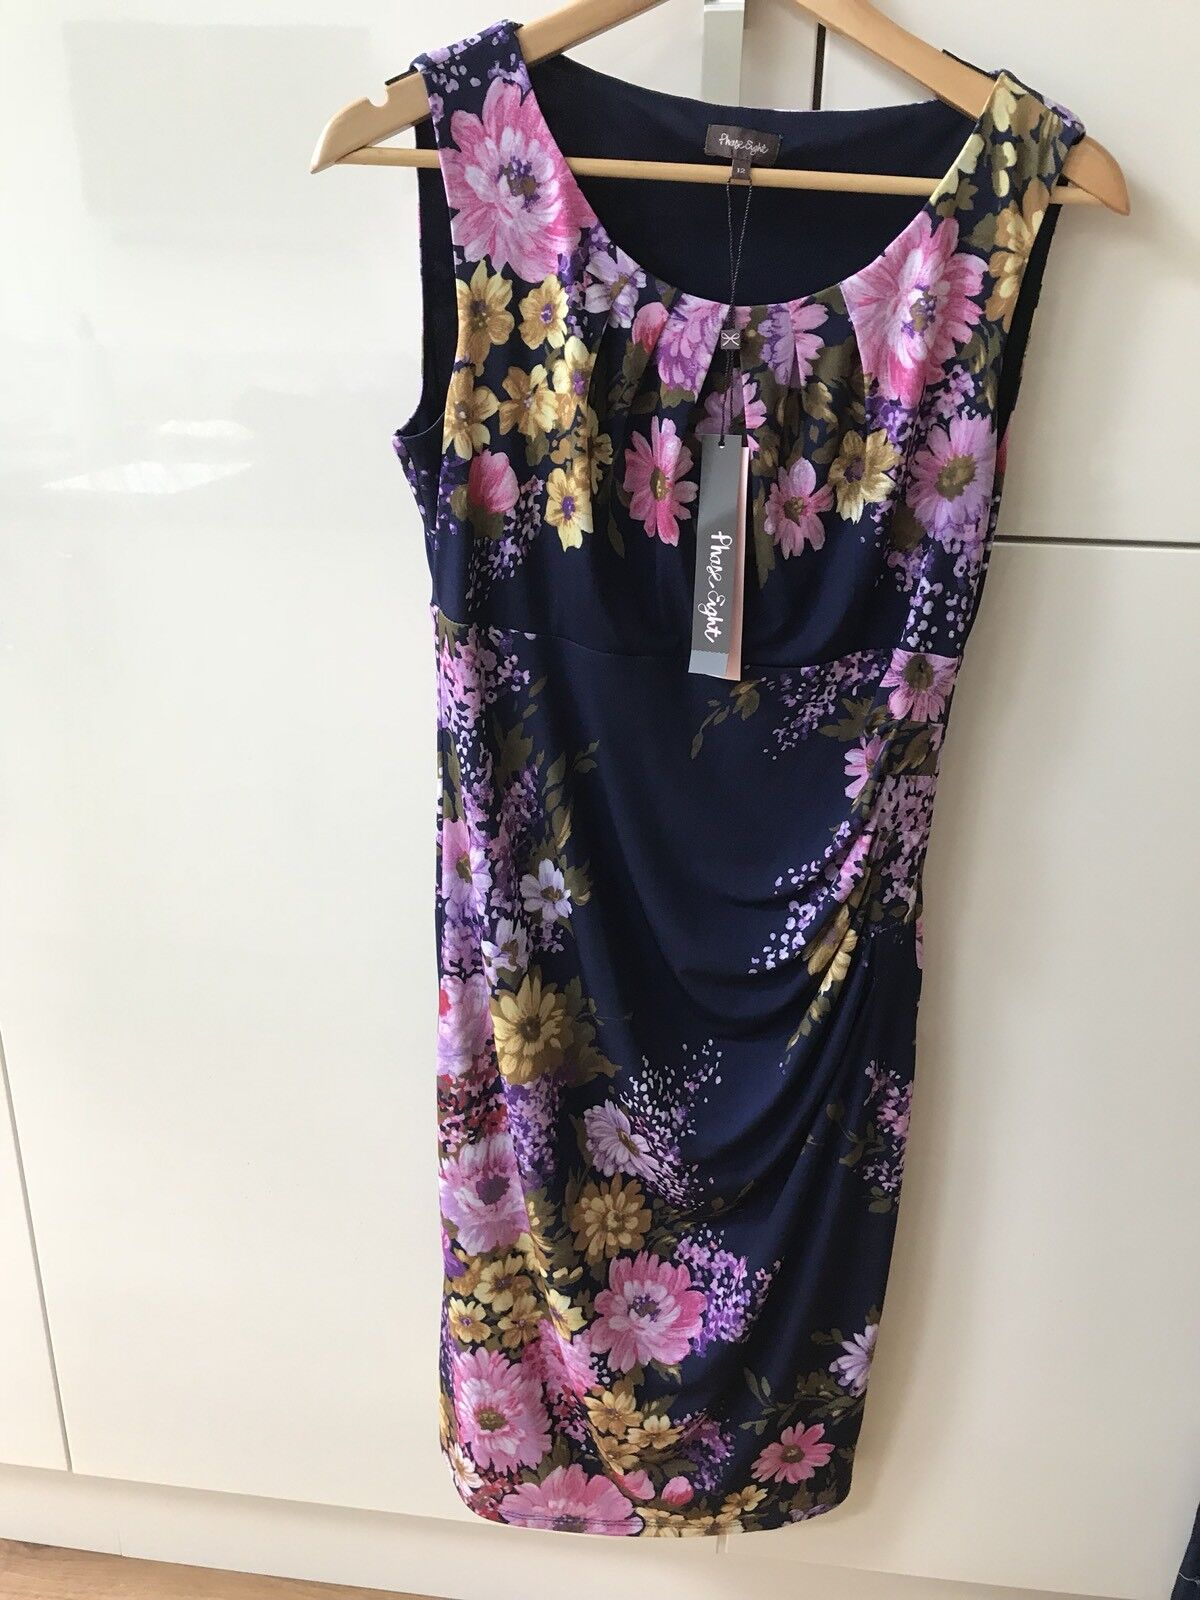 BNWT Phase Eight purple Vintage Floral Dress - Size 12 - RRP